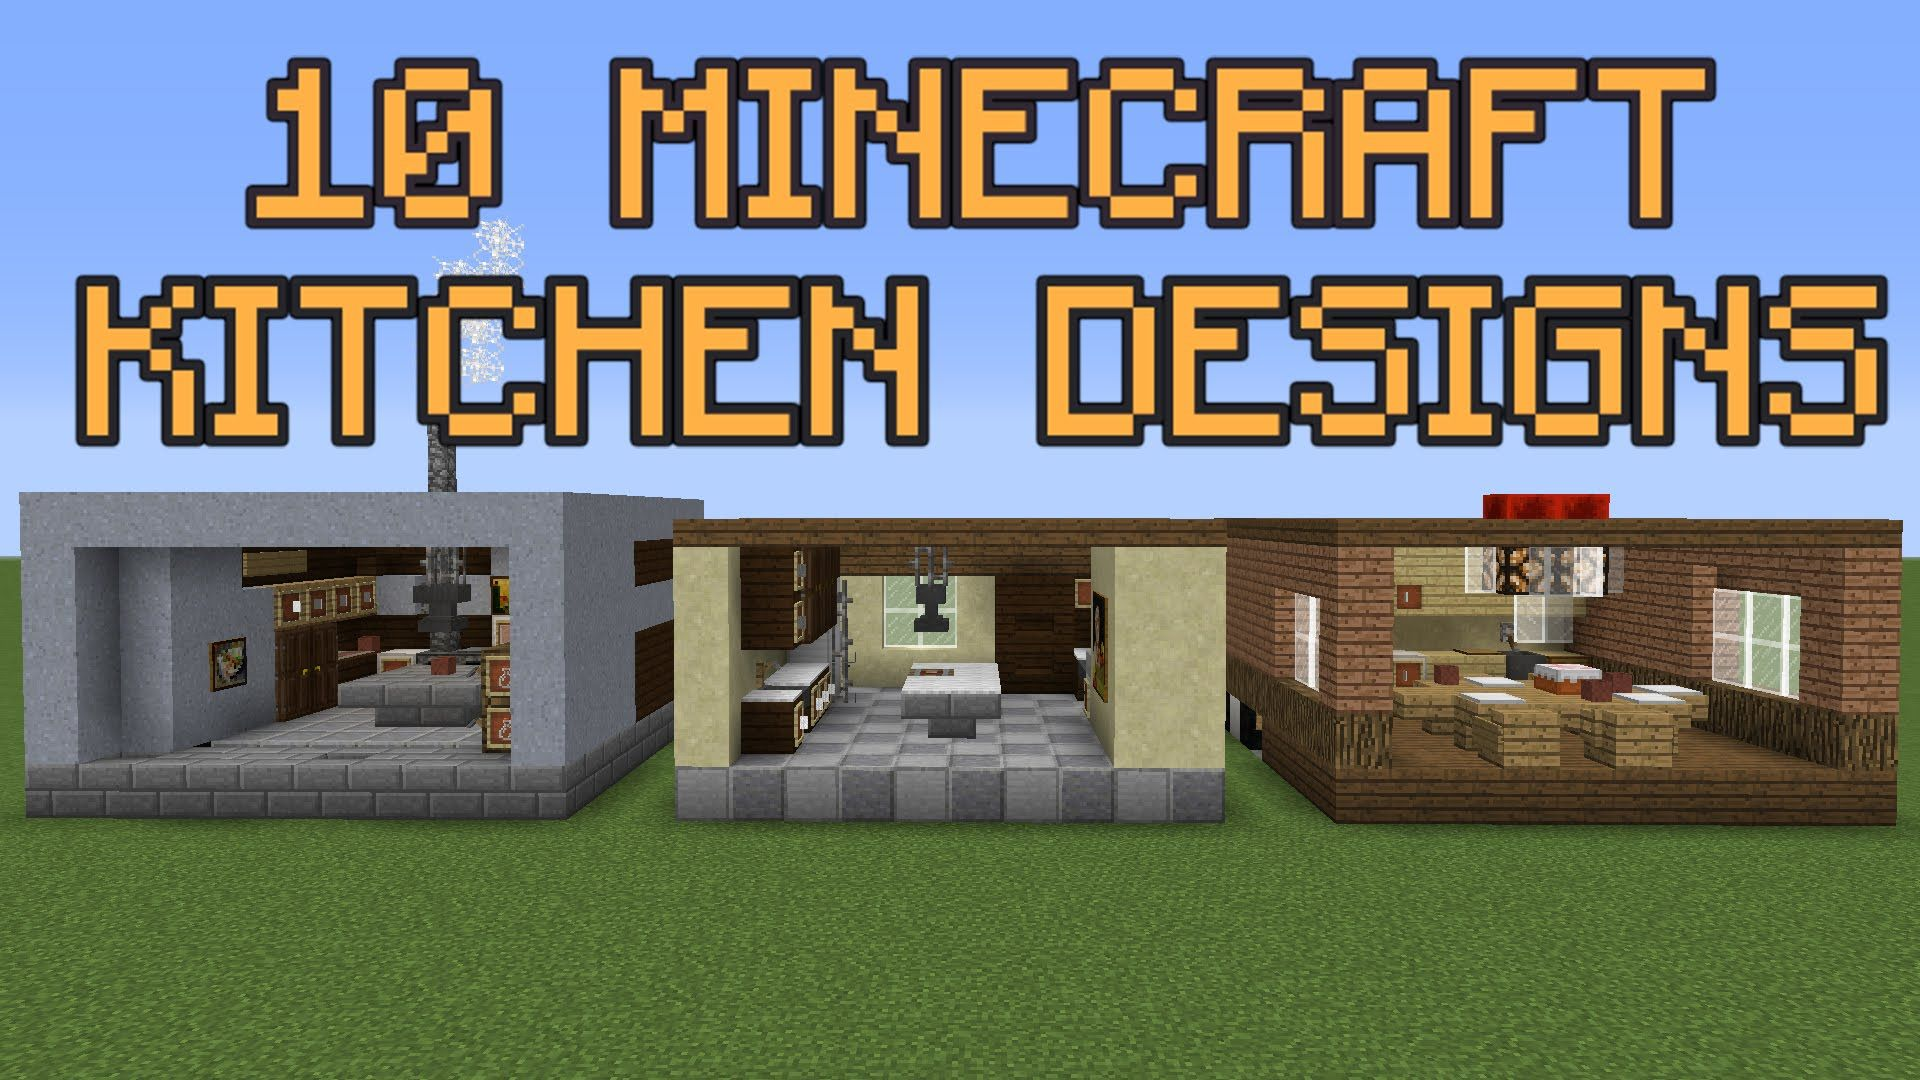 Kitchen Ideas Minecraft Pe 10 minecraft kitchen designs | minecraft | pinterest | minecraft